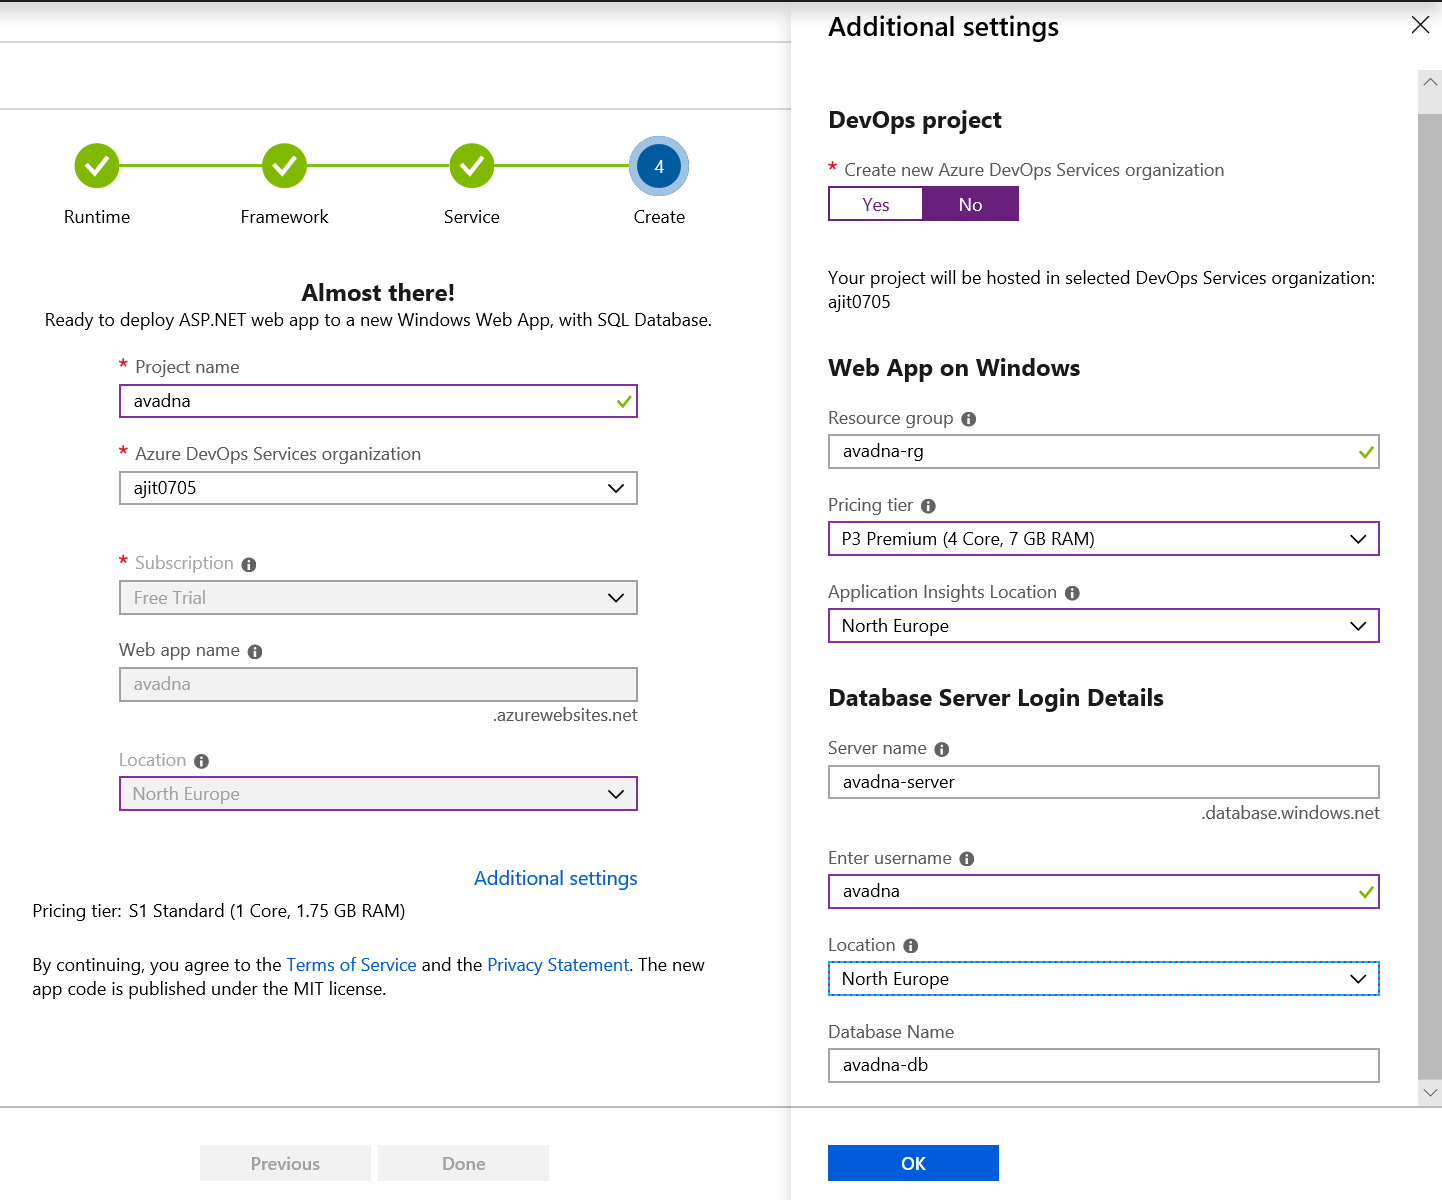 Azure DevOps and Sample Windows Web App - Finance and Operations